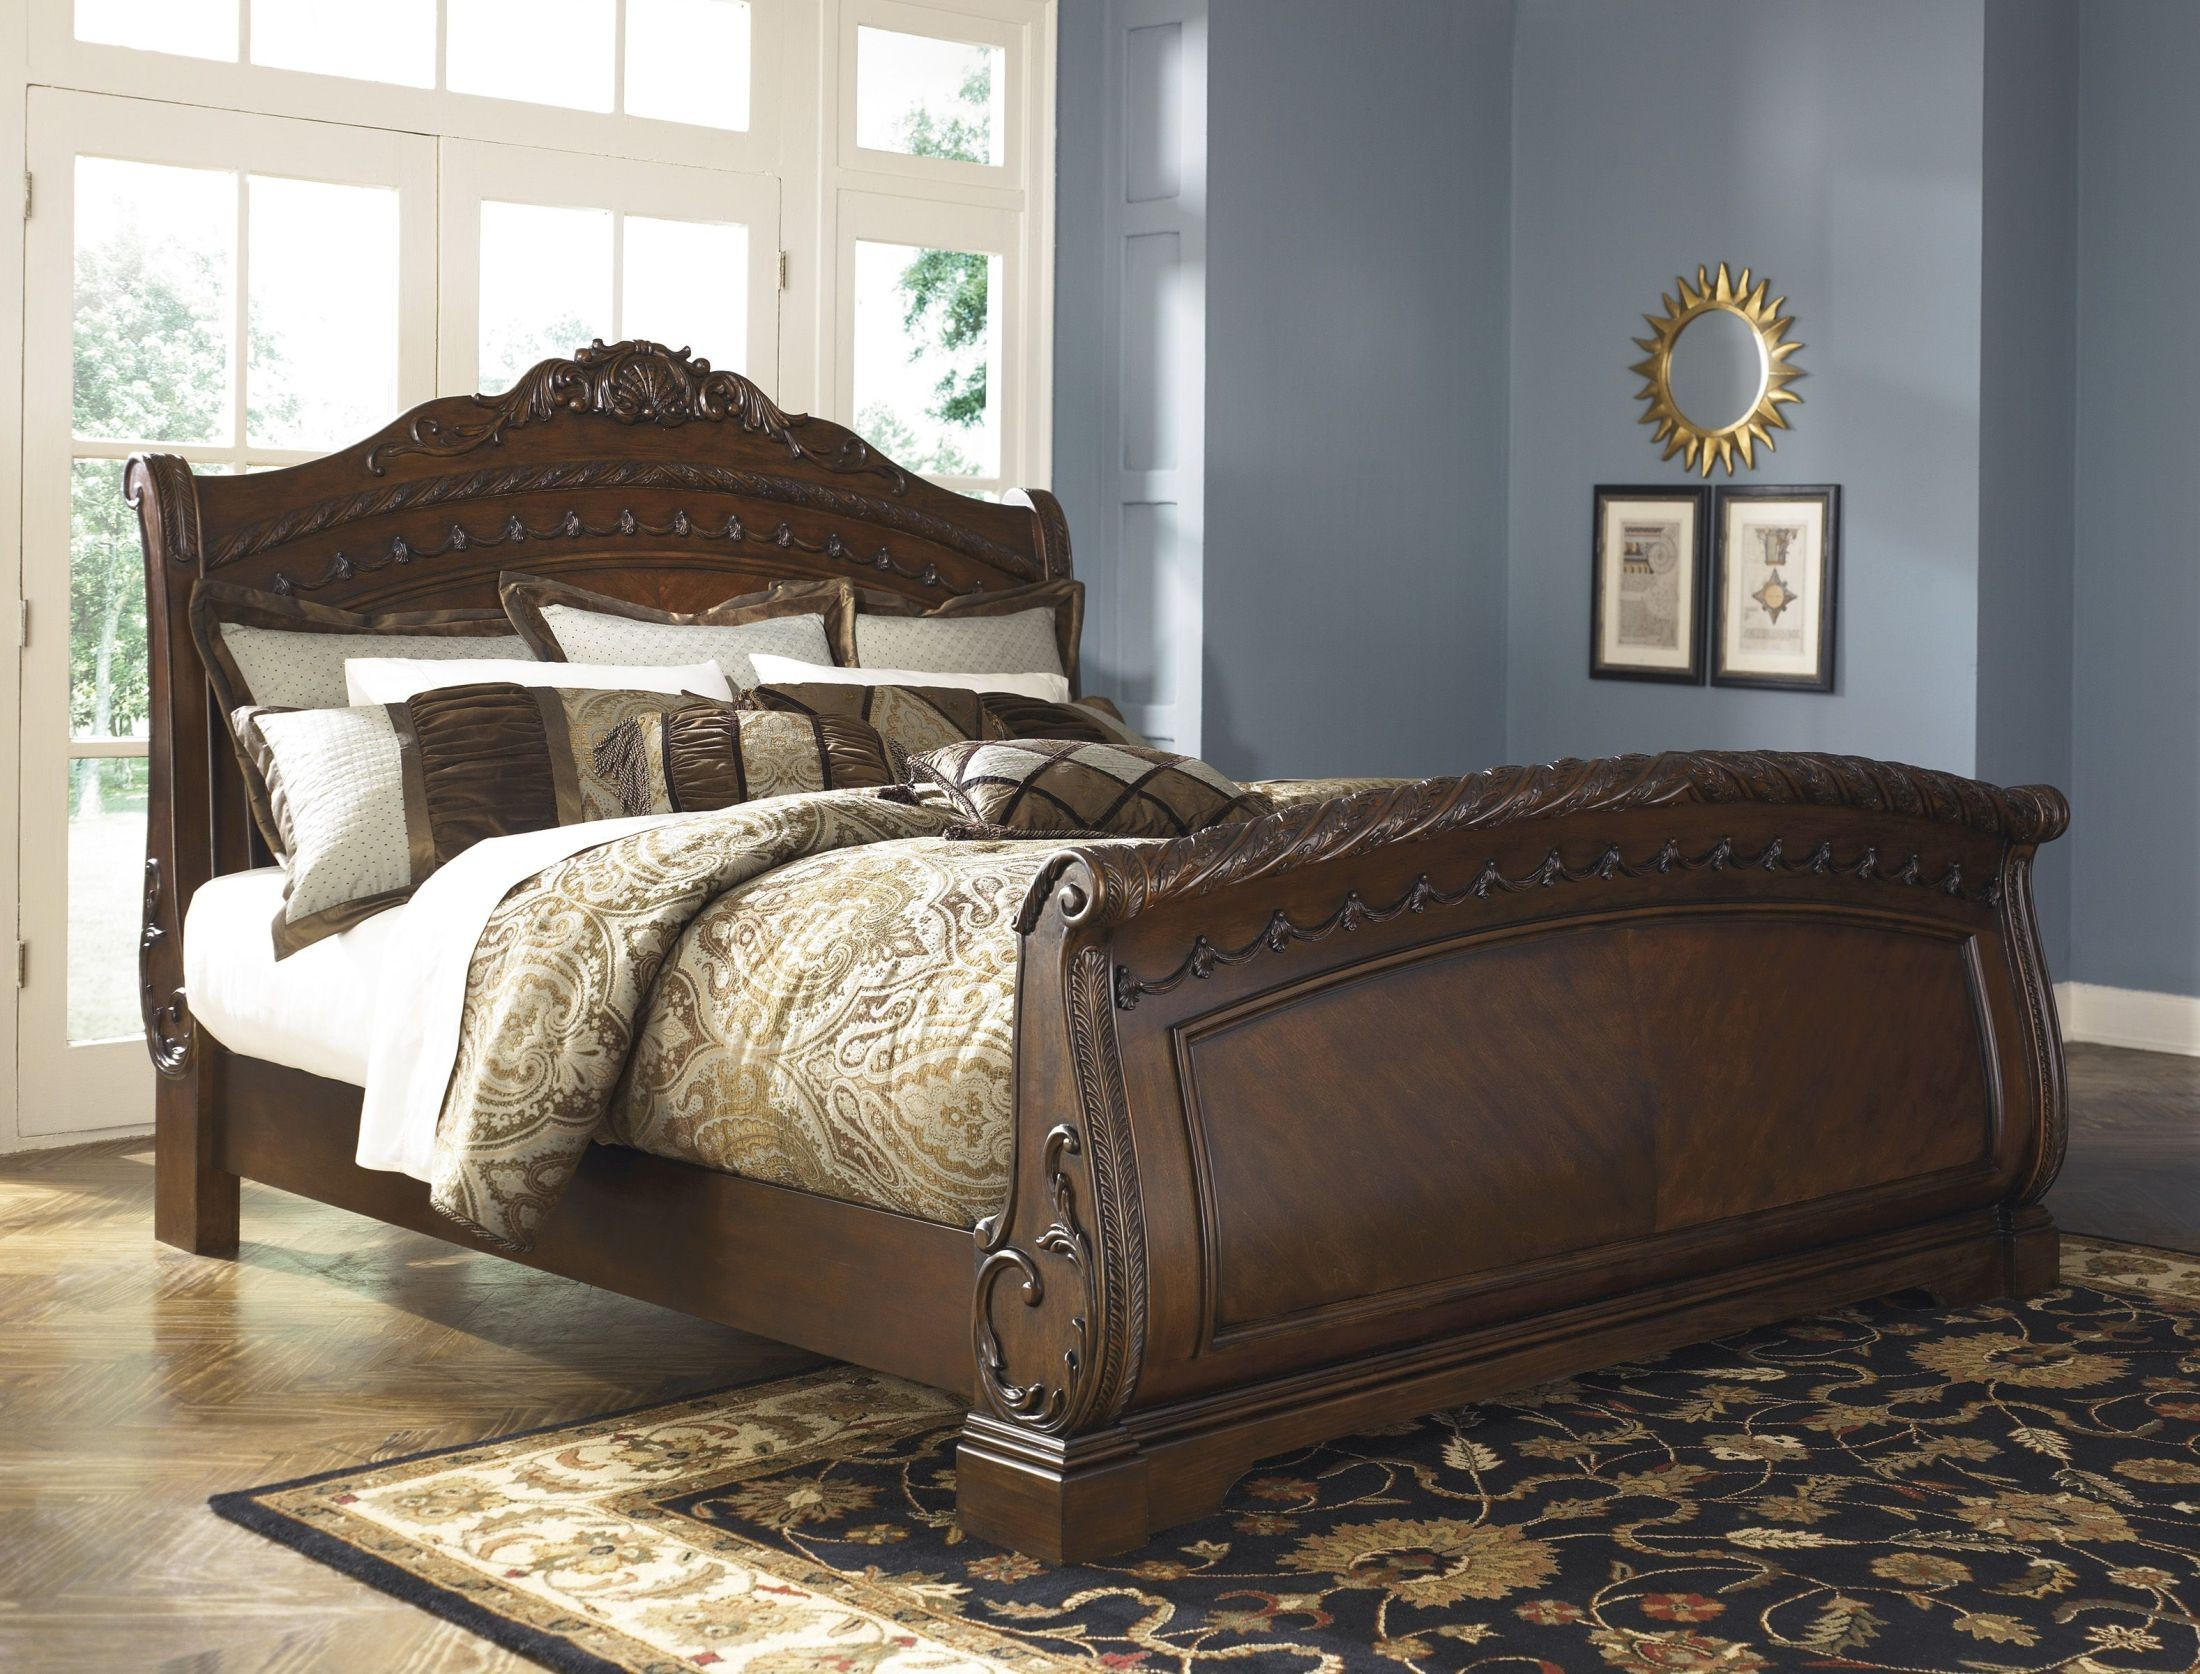 550247. North Shore Sleigh Bedroom Set from Ashley  B553    Coleman Furniture